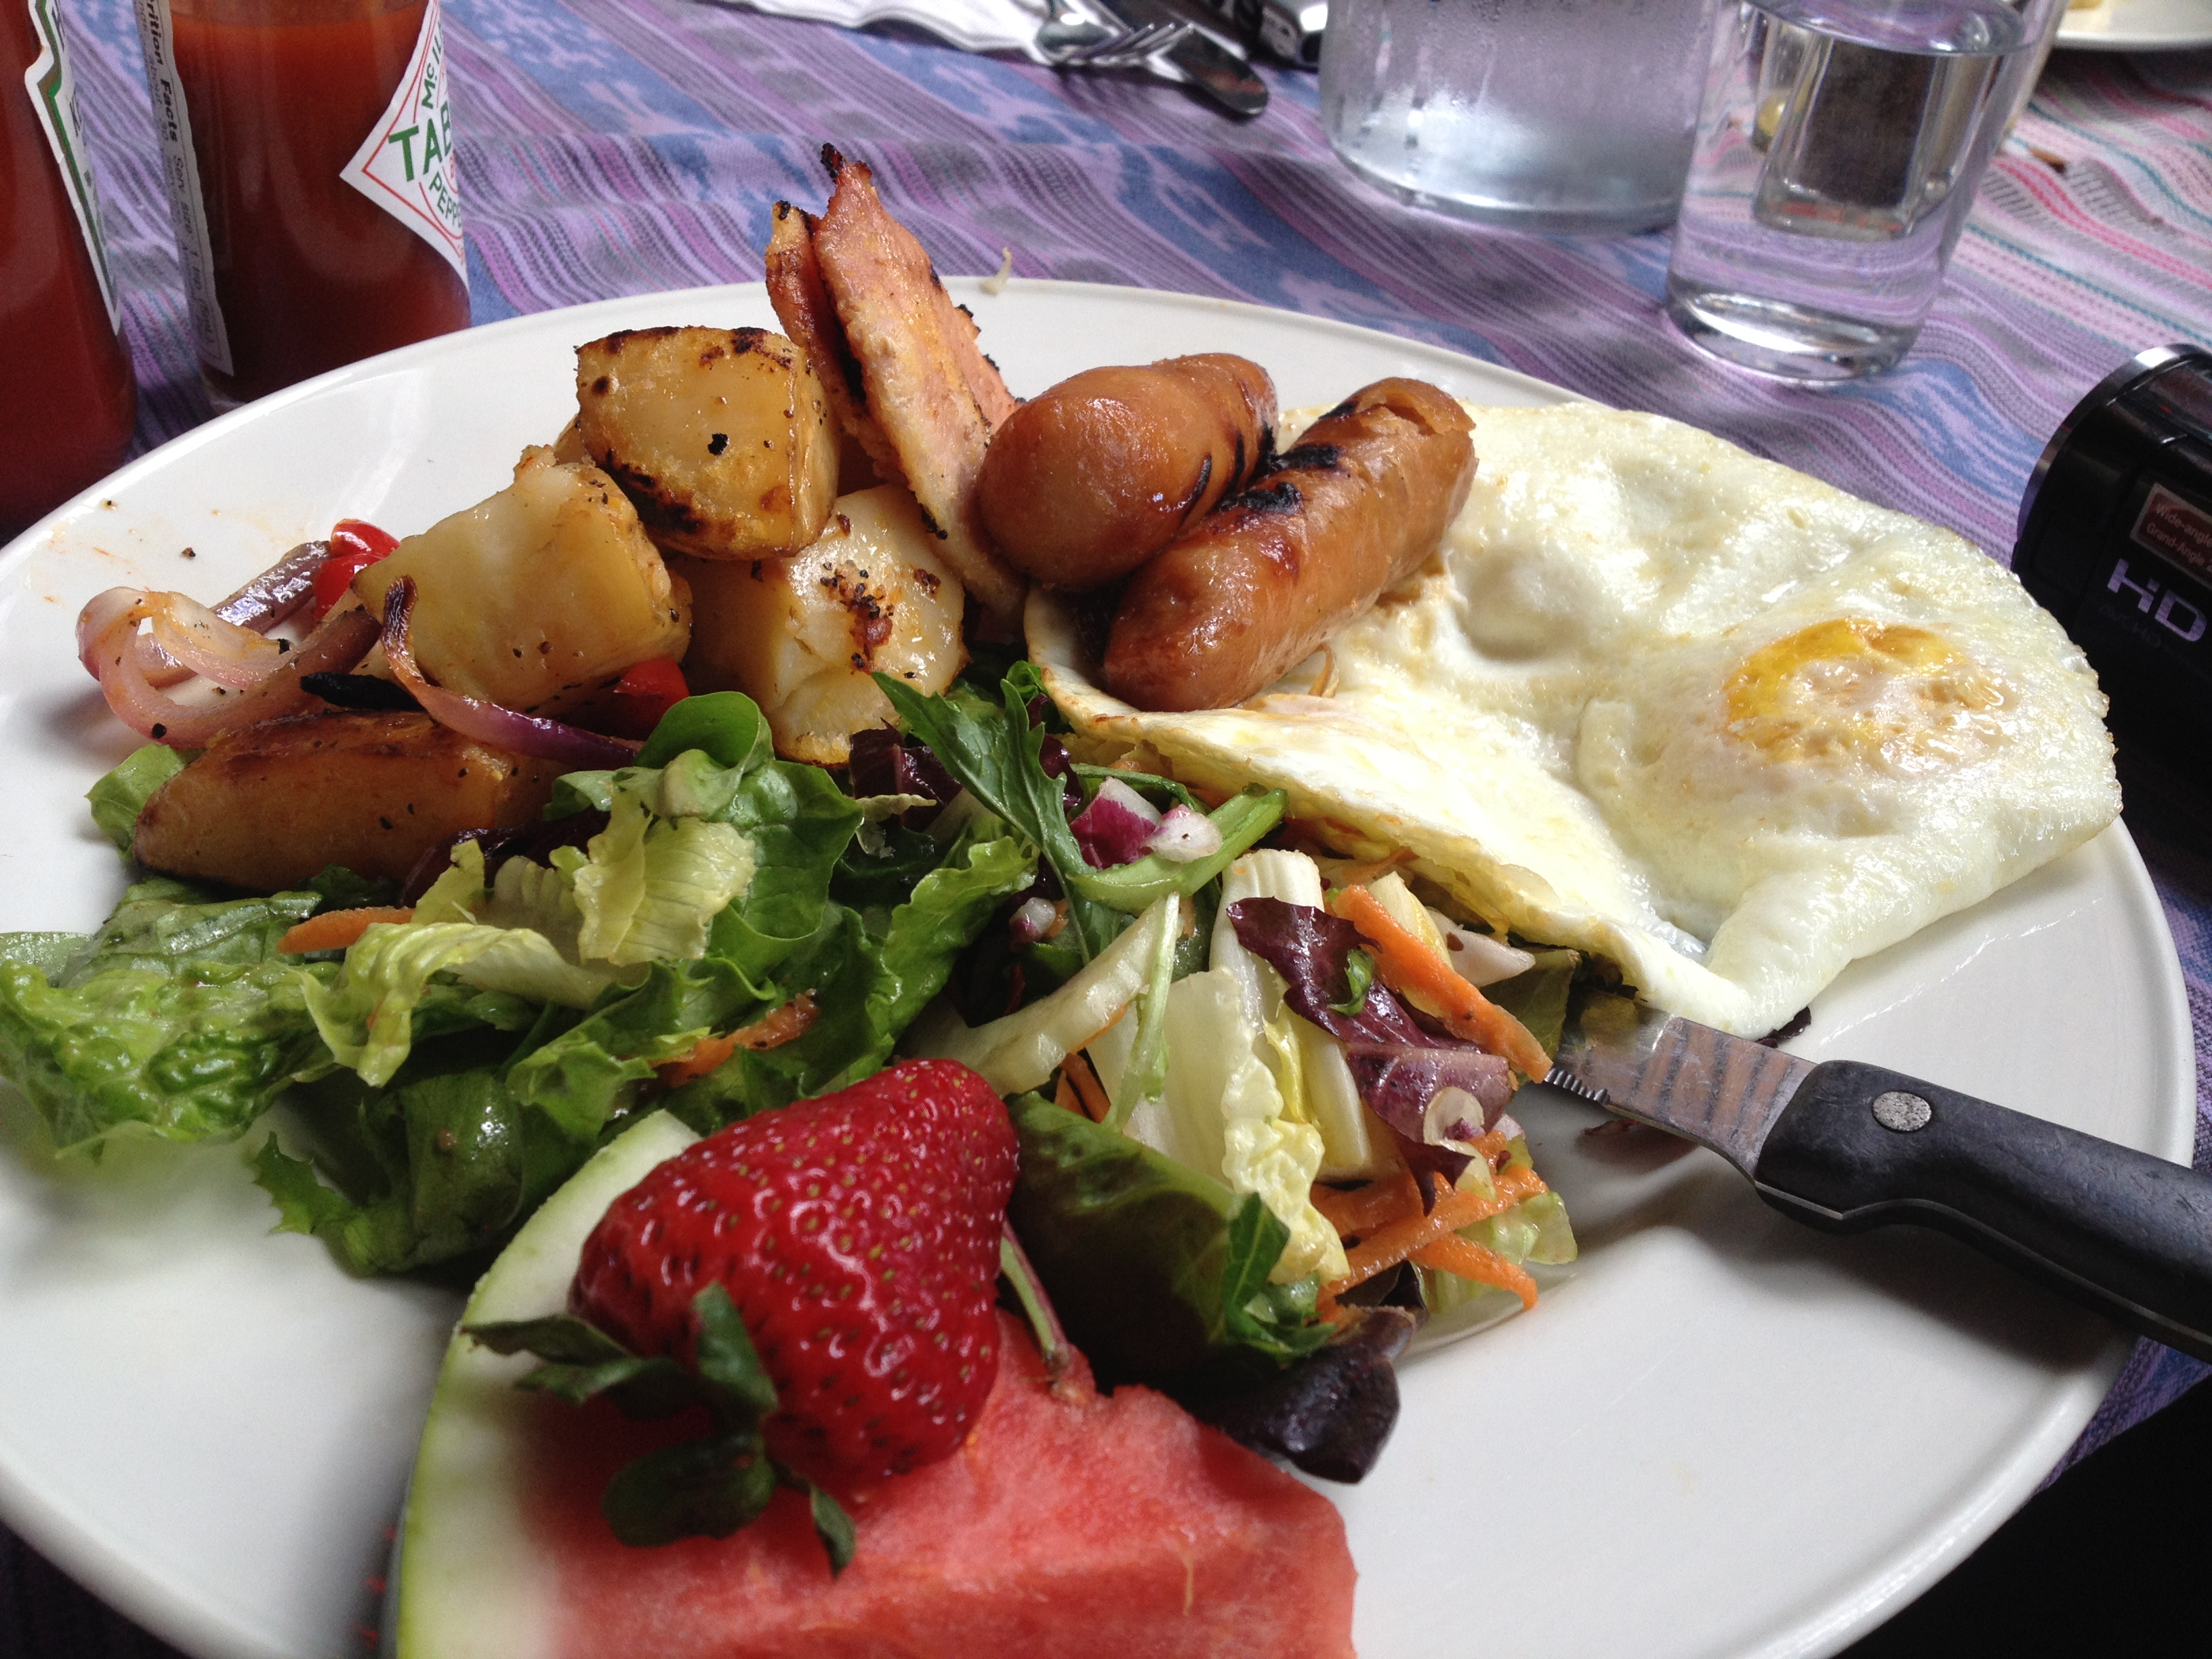 My brunch at Cafe La Gaffe.  This was good. I imagine their lunch and dinner will be too!